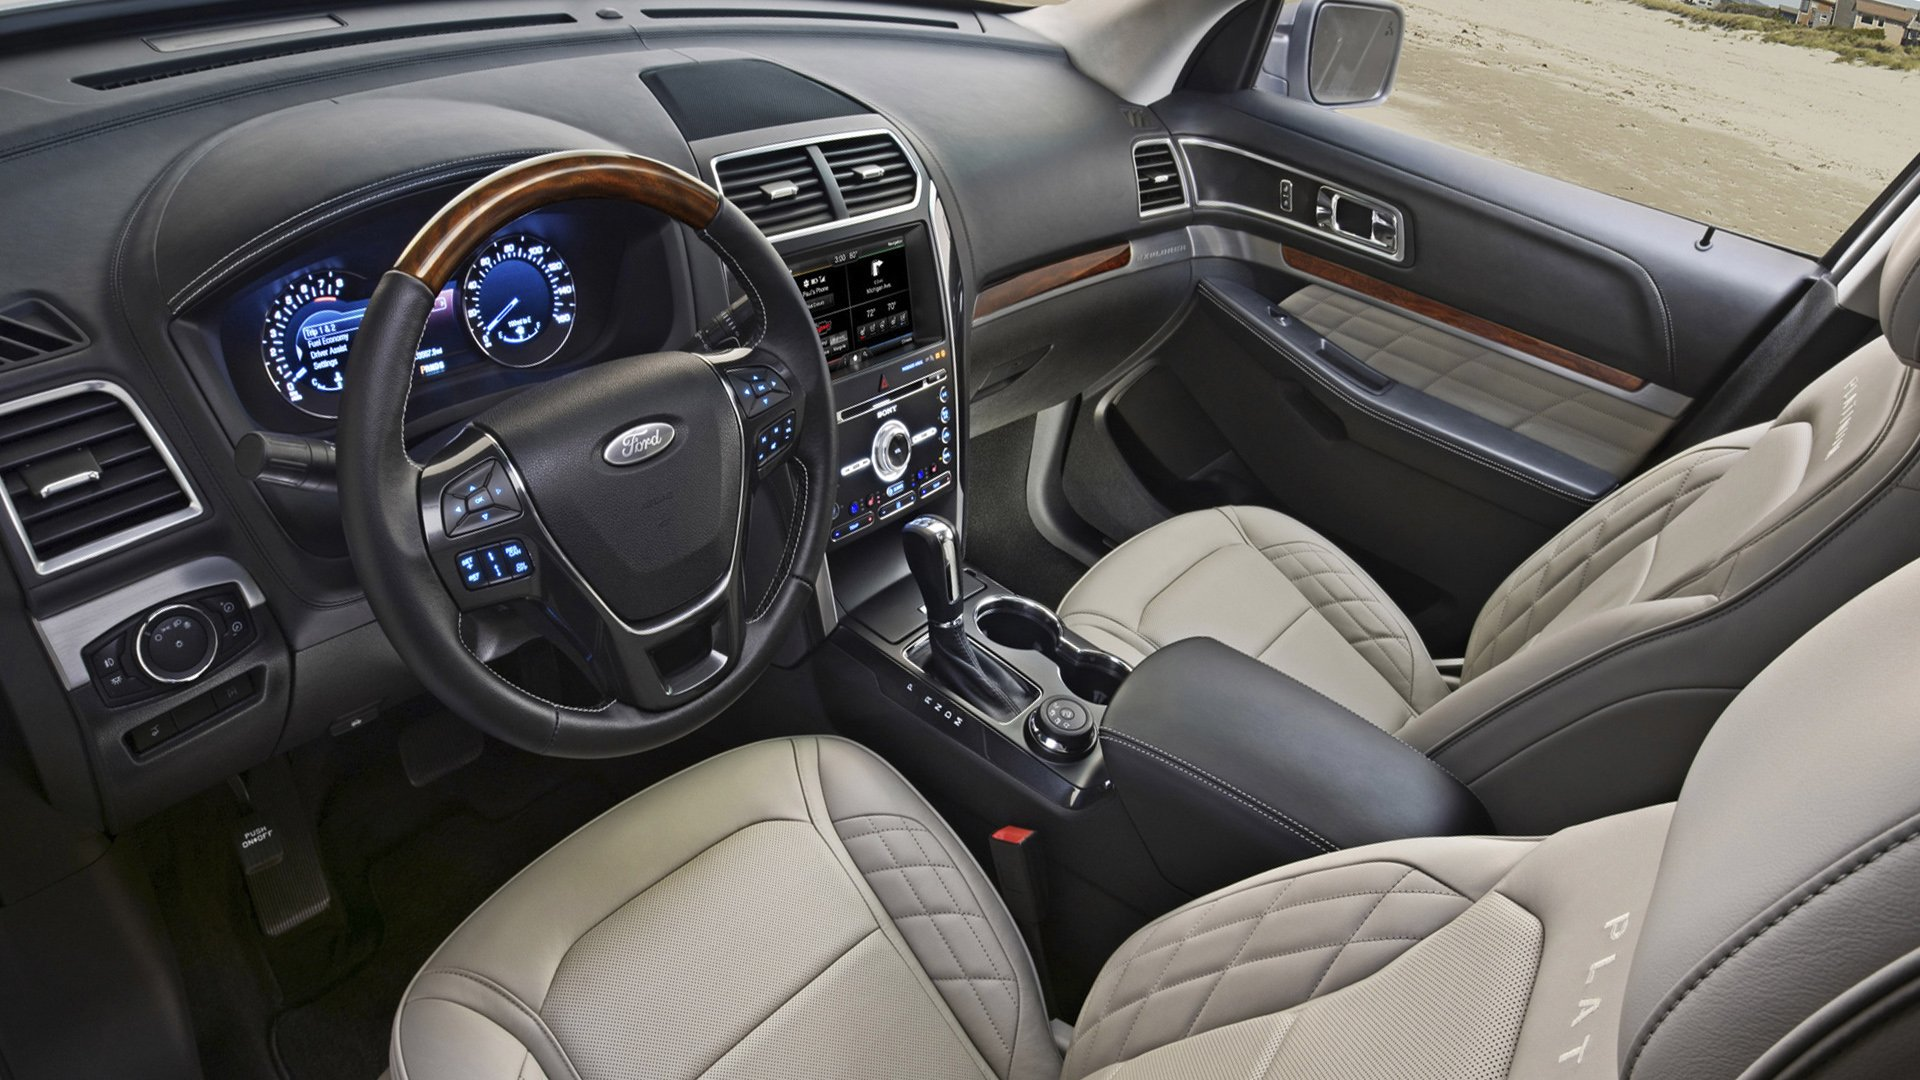 New 2019 Ford Explorer Interior Design